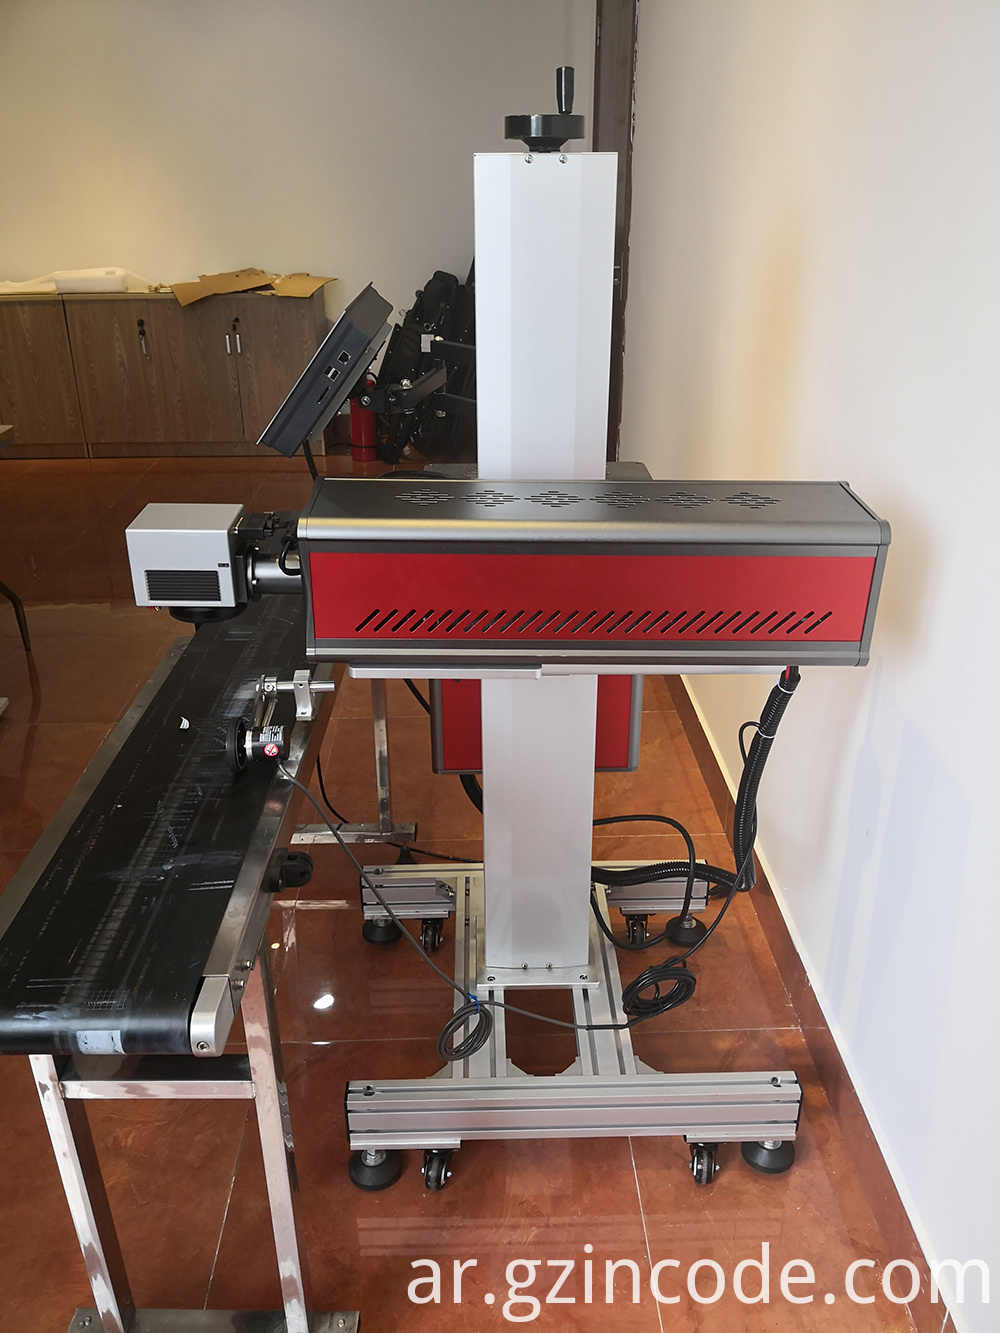 Industrial CO2 Laser Printer